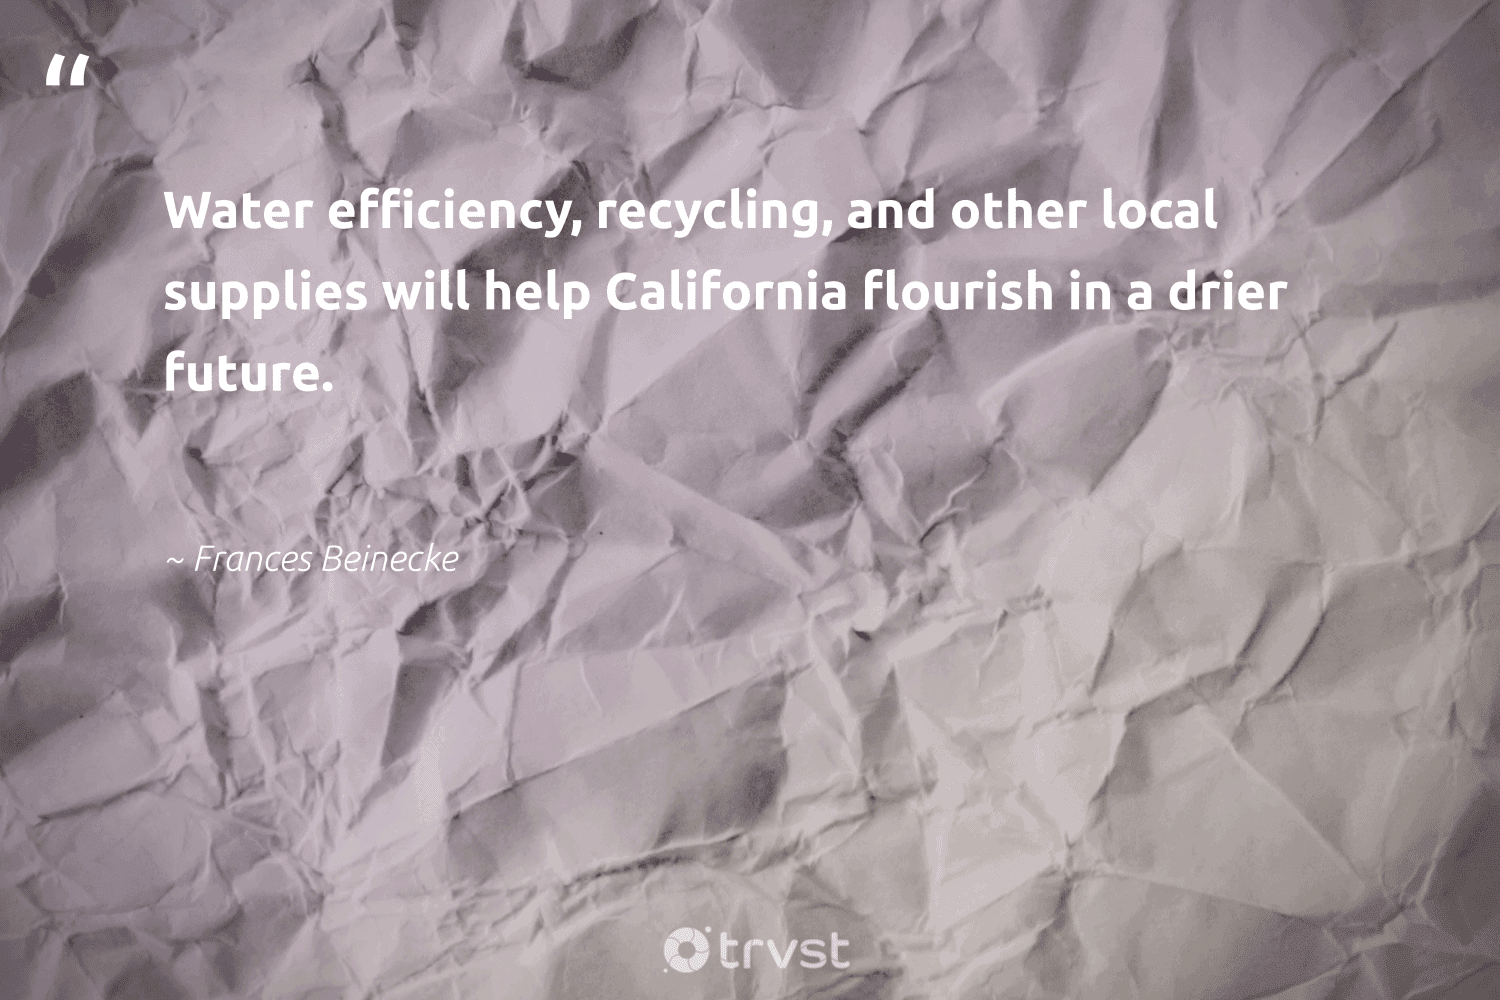 """""""Water efficiency, recycling, and other local supplies will help California flourish in a drier future.""""  - Frances Beinecke #trvst #quotes #recycling #water #upcycling #wasteless #savetheplanet #takeaction #reducereuserecycle #noplanetb #environment #socialimpact"""